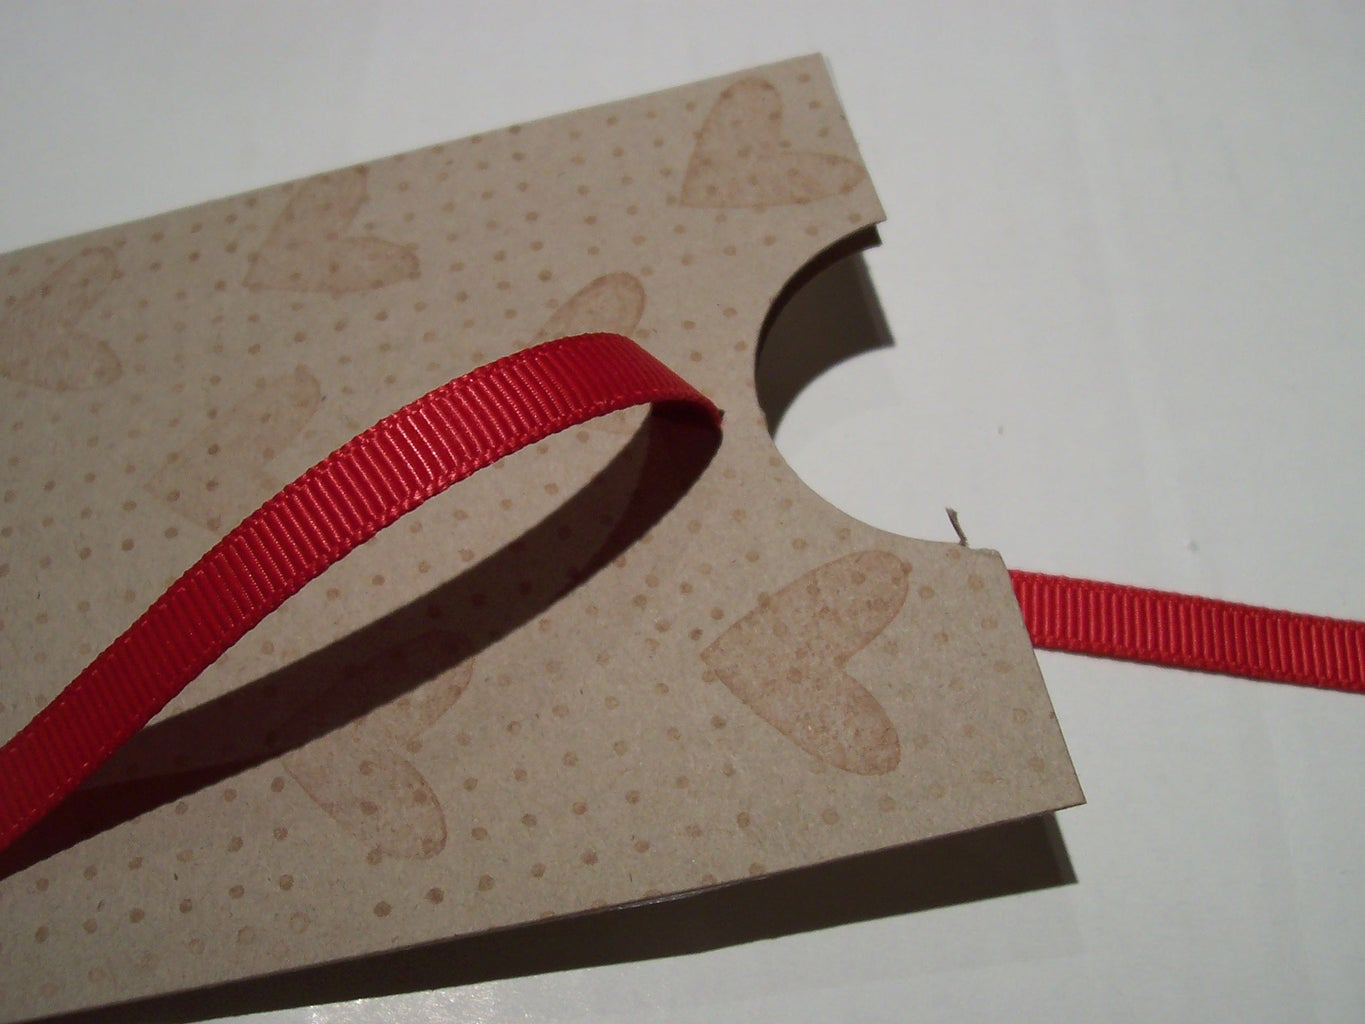 The Ribbon and Finishing